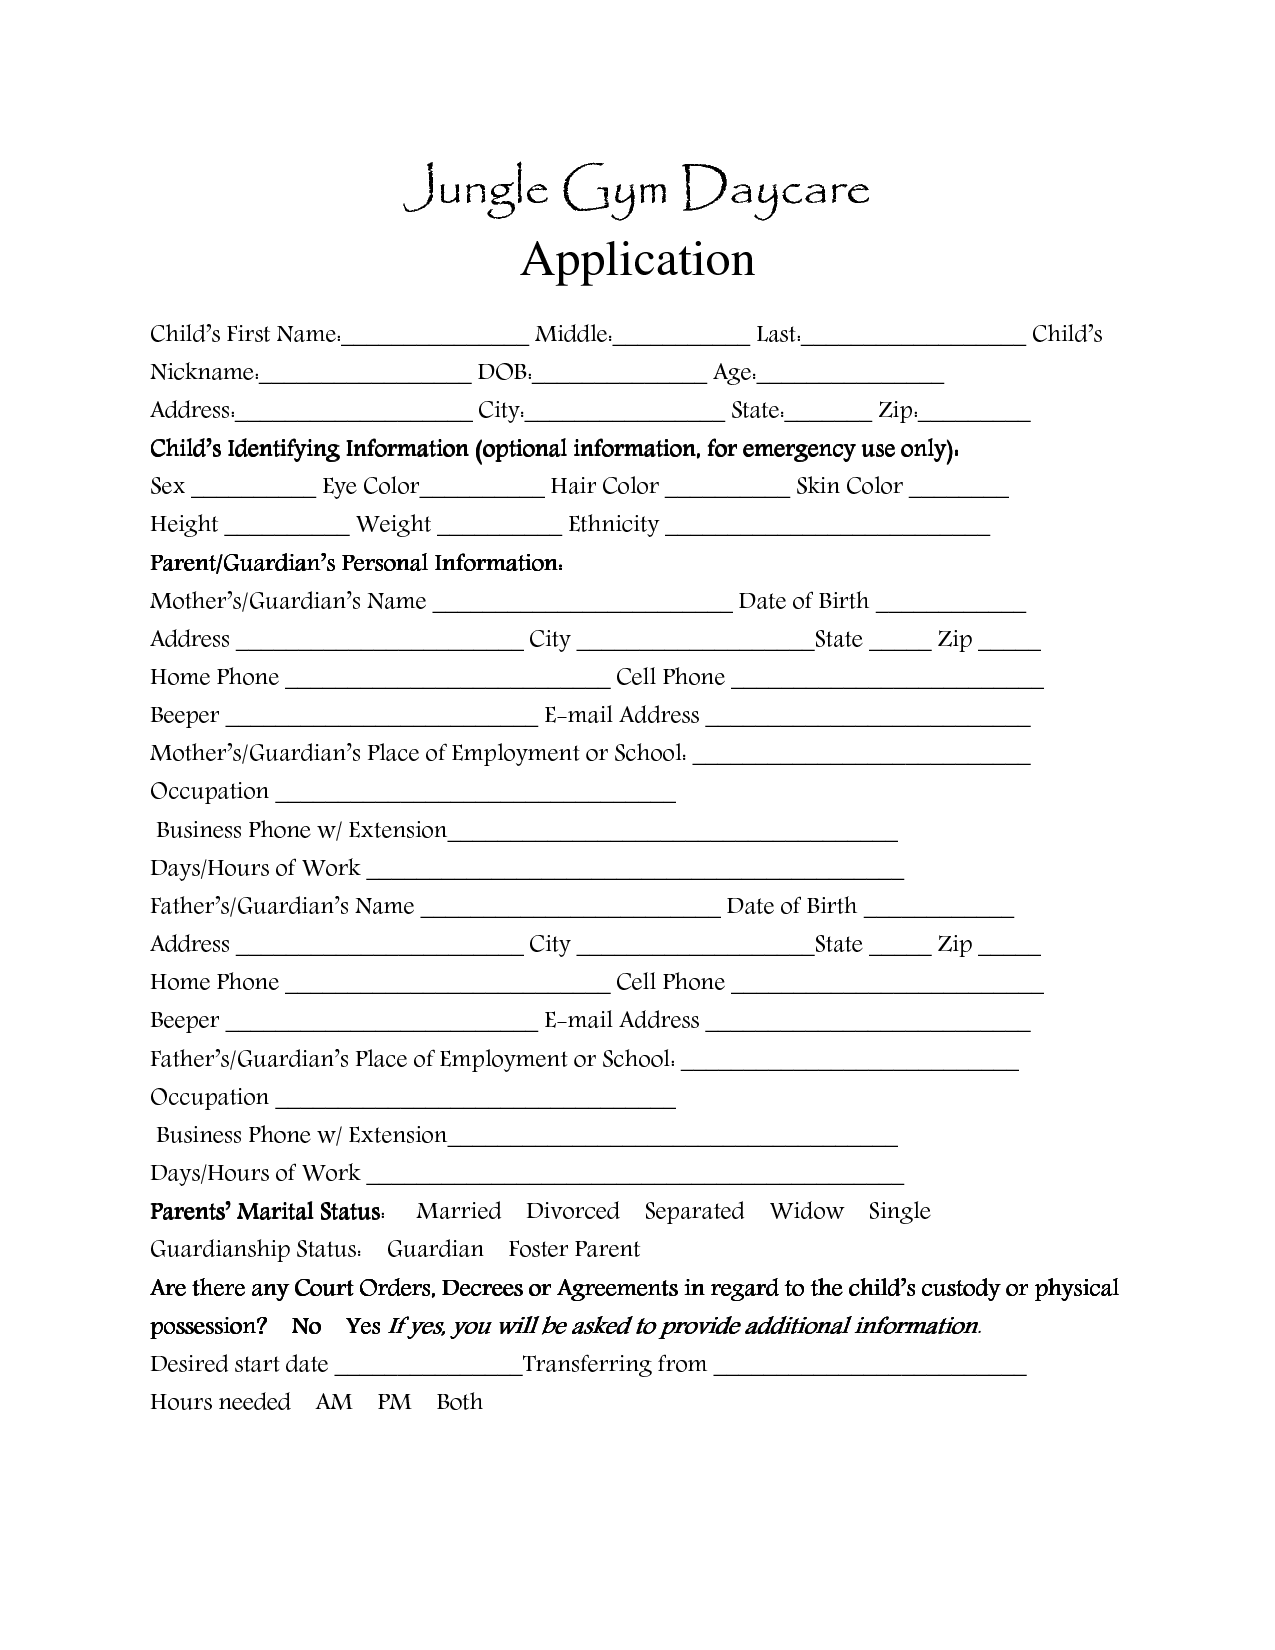 Day Care Application Forms Template